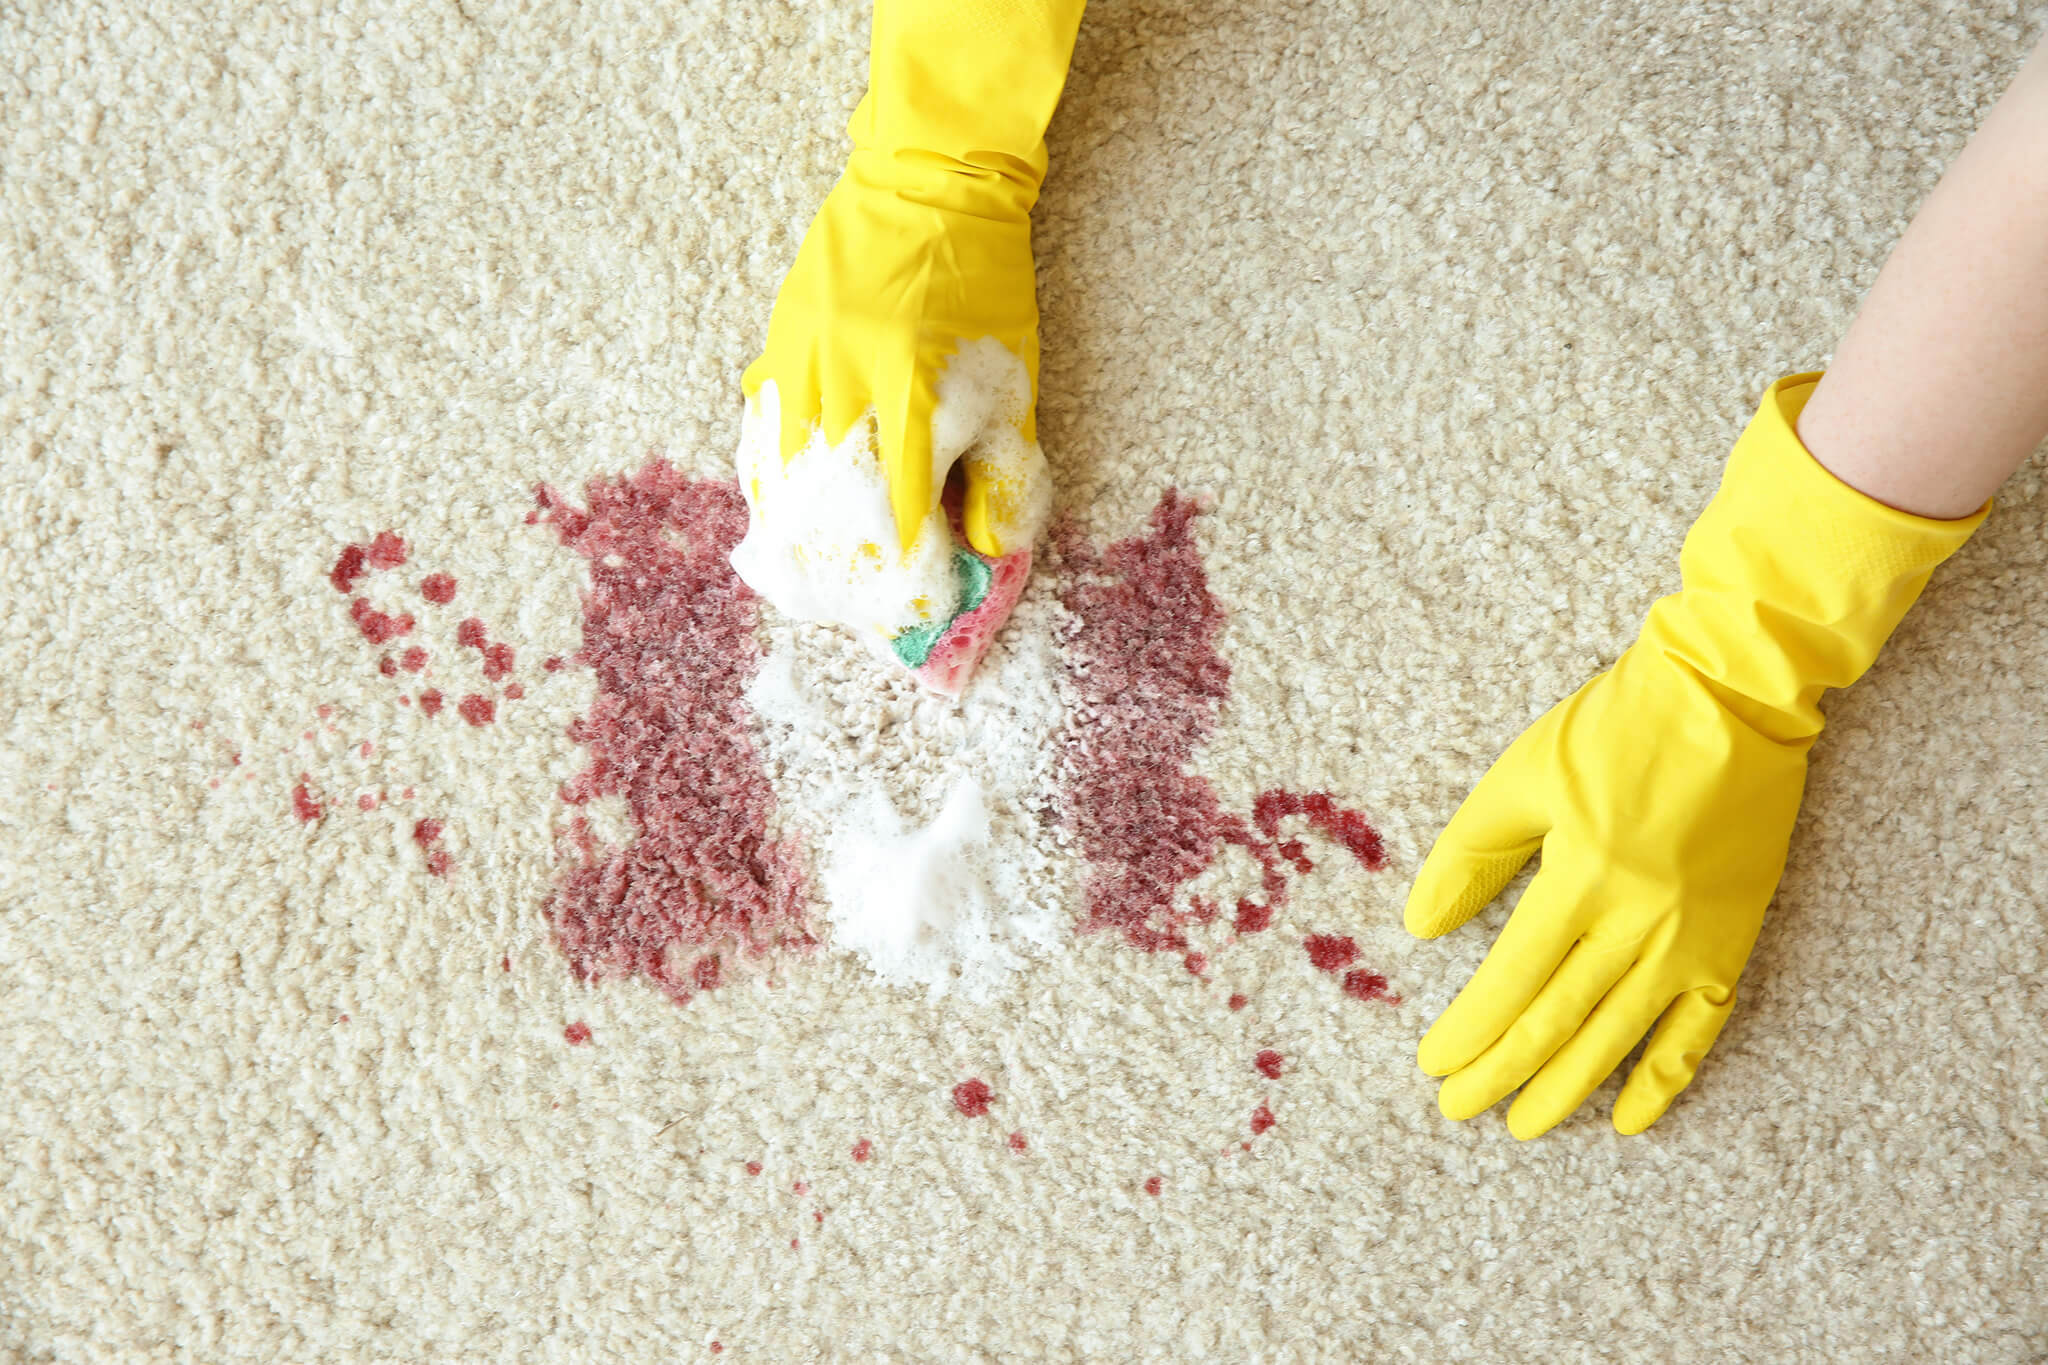 Dried Bloodstain on Carpet